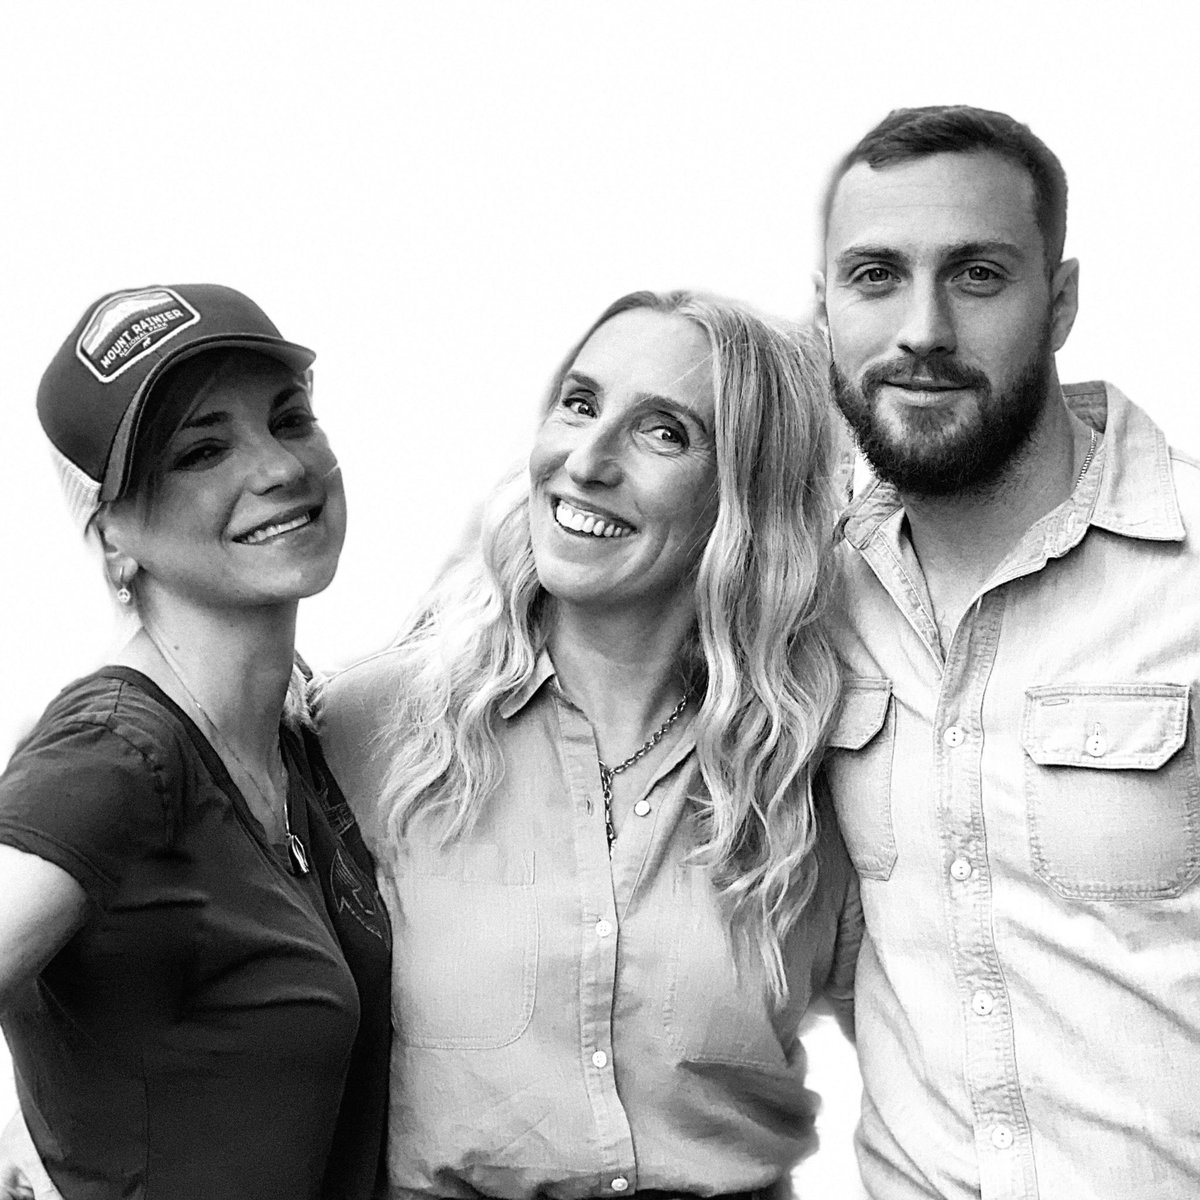 #SamTaylorJohnson and #AaronTaylorJohnson are on @Unqualified this week!